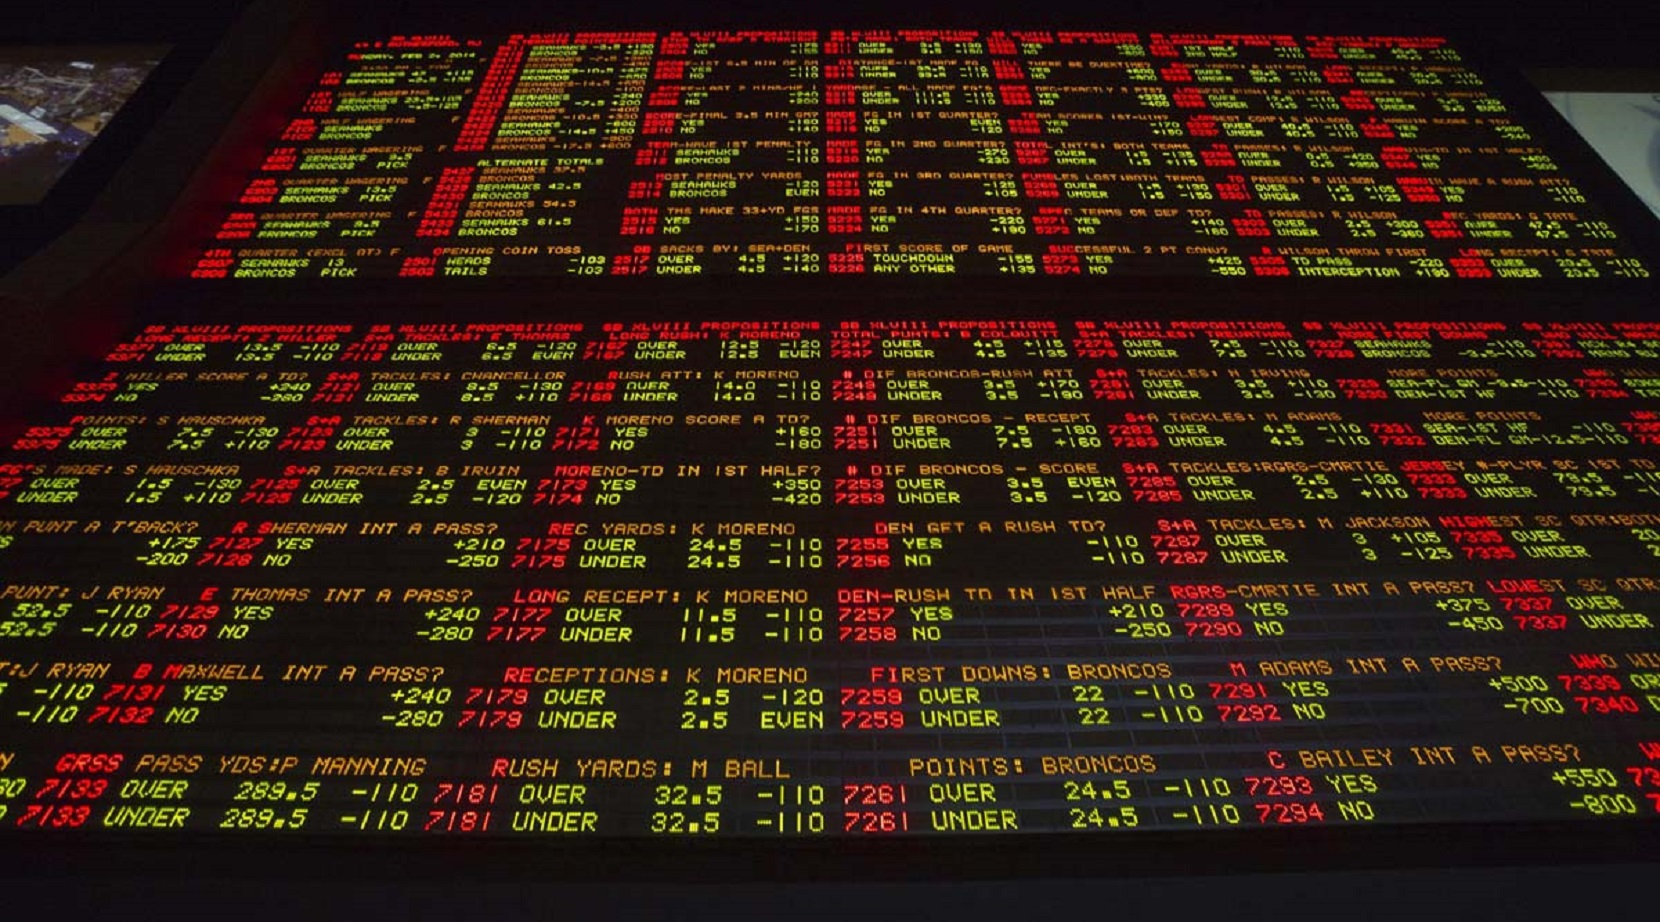 Sports Betting Boards at Sportsbook